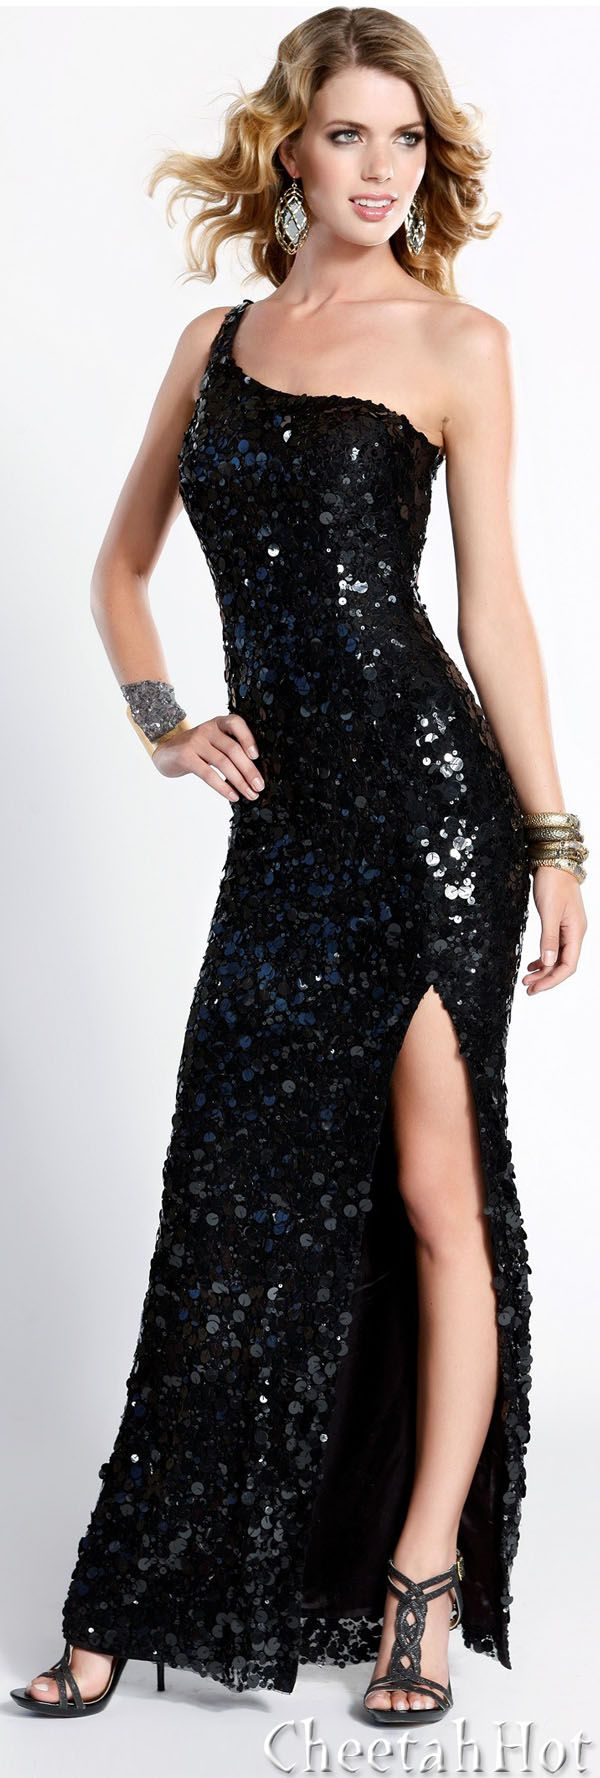 Scala beautiful black gown fashions pinterest gowns black